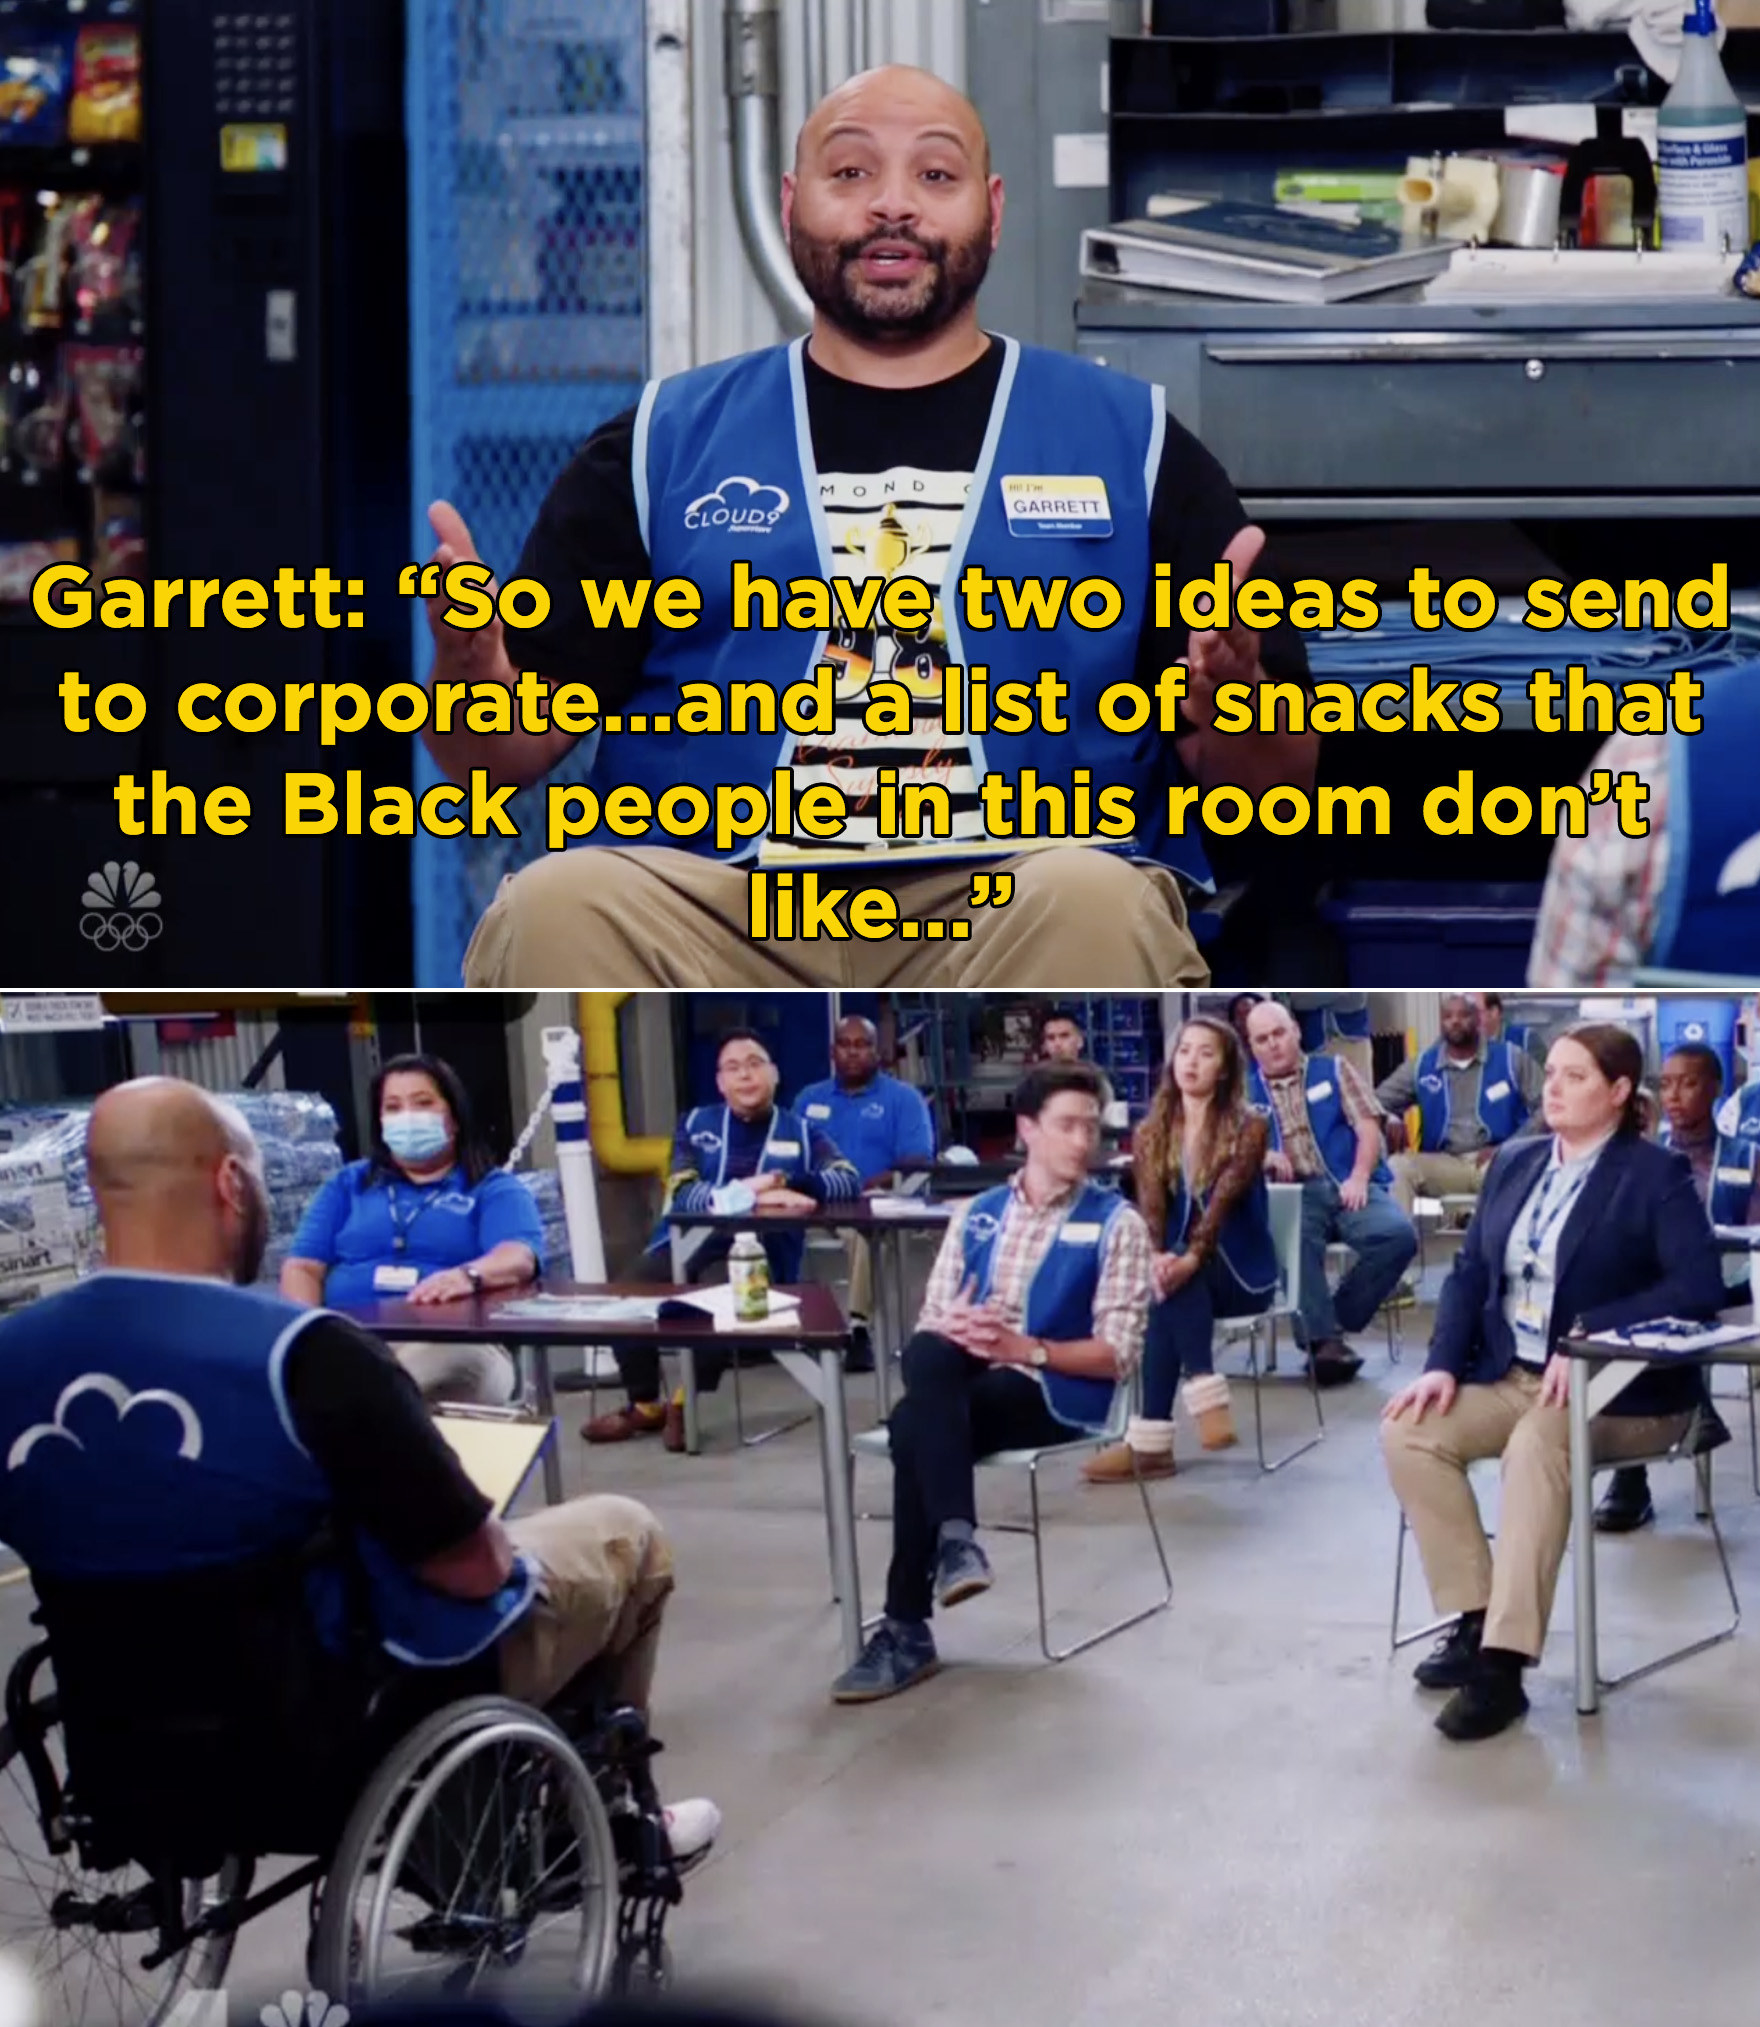 """Garrett saying, """"So we have two ideas to send to corporate...and a list of snacks that the Black people in this room don't like"""""""